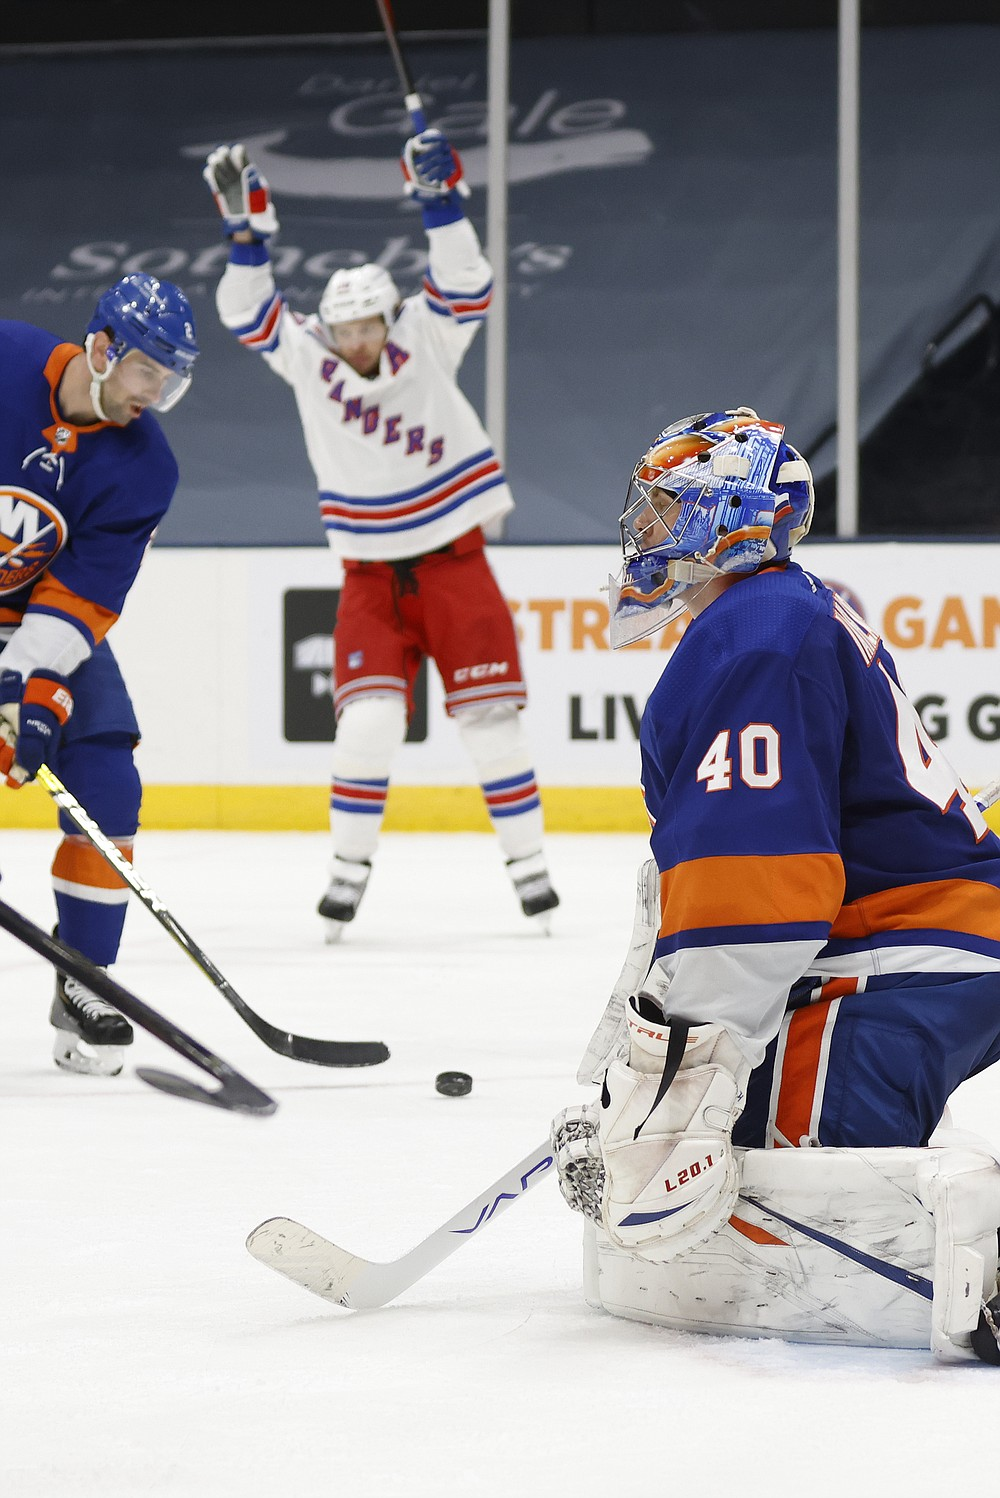 New York Islanders goalie Semyon Varlamov (40), of Russia, reacts after giving up a goal to the New York Rangers during the third period of an NHL hockey game Friday, April 9, 2021, in Uniondale, N.Y. (AP Photo/Jason DeCrow)